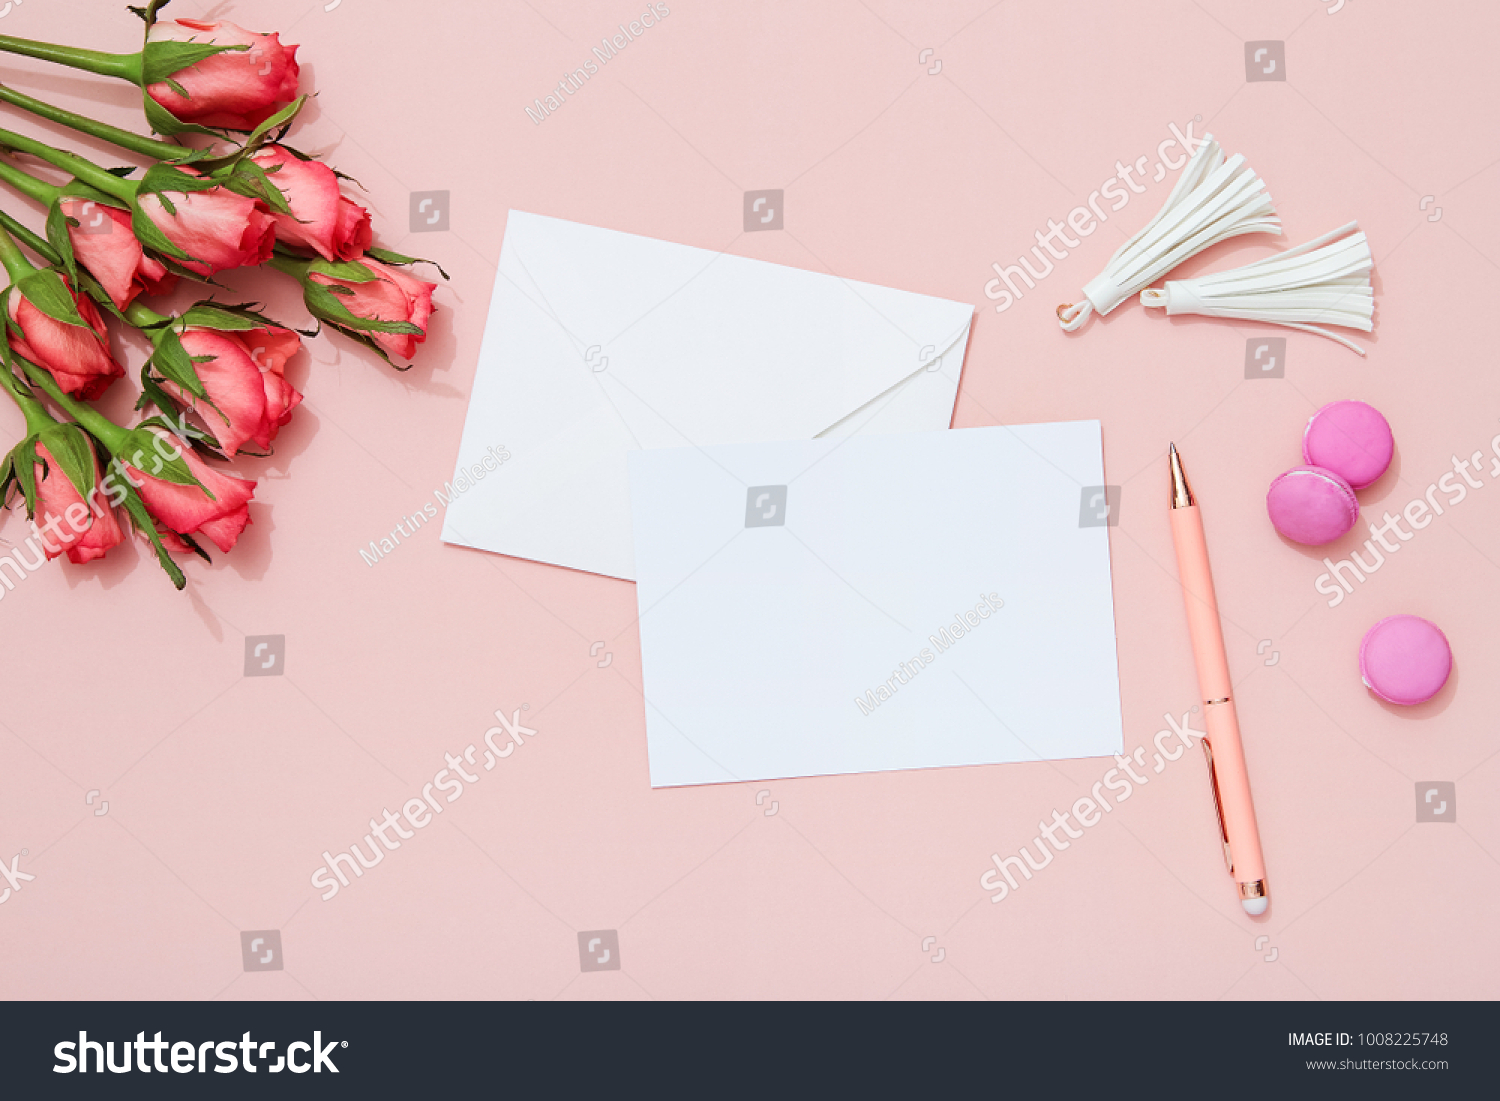 Celebration greeting card envelope roses on stock photo 1008225748 celebration greeting card envelope and roses on pink background valentines day flat lay kristyandbryce Gallery